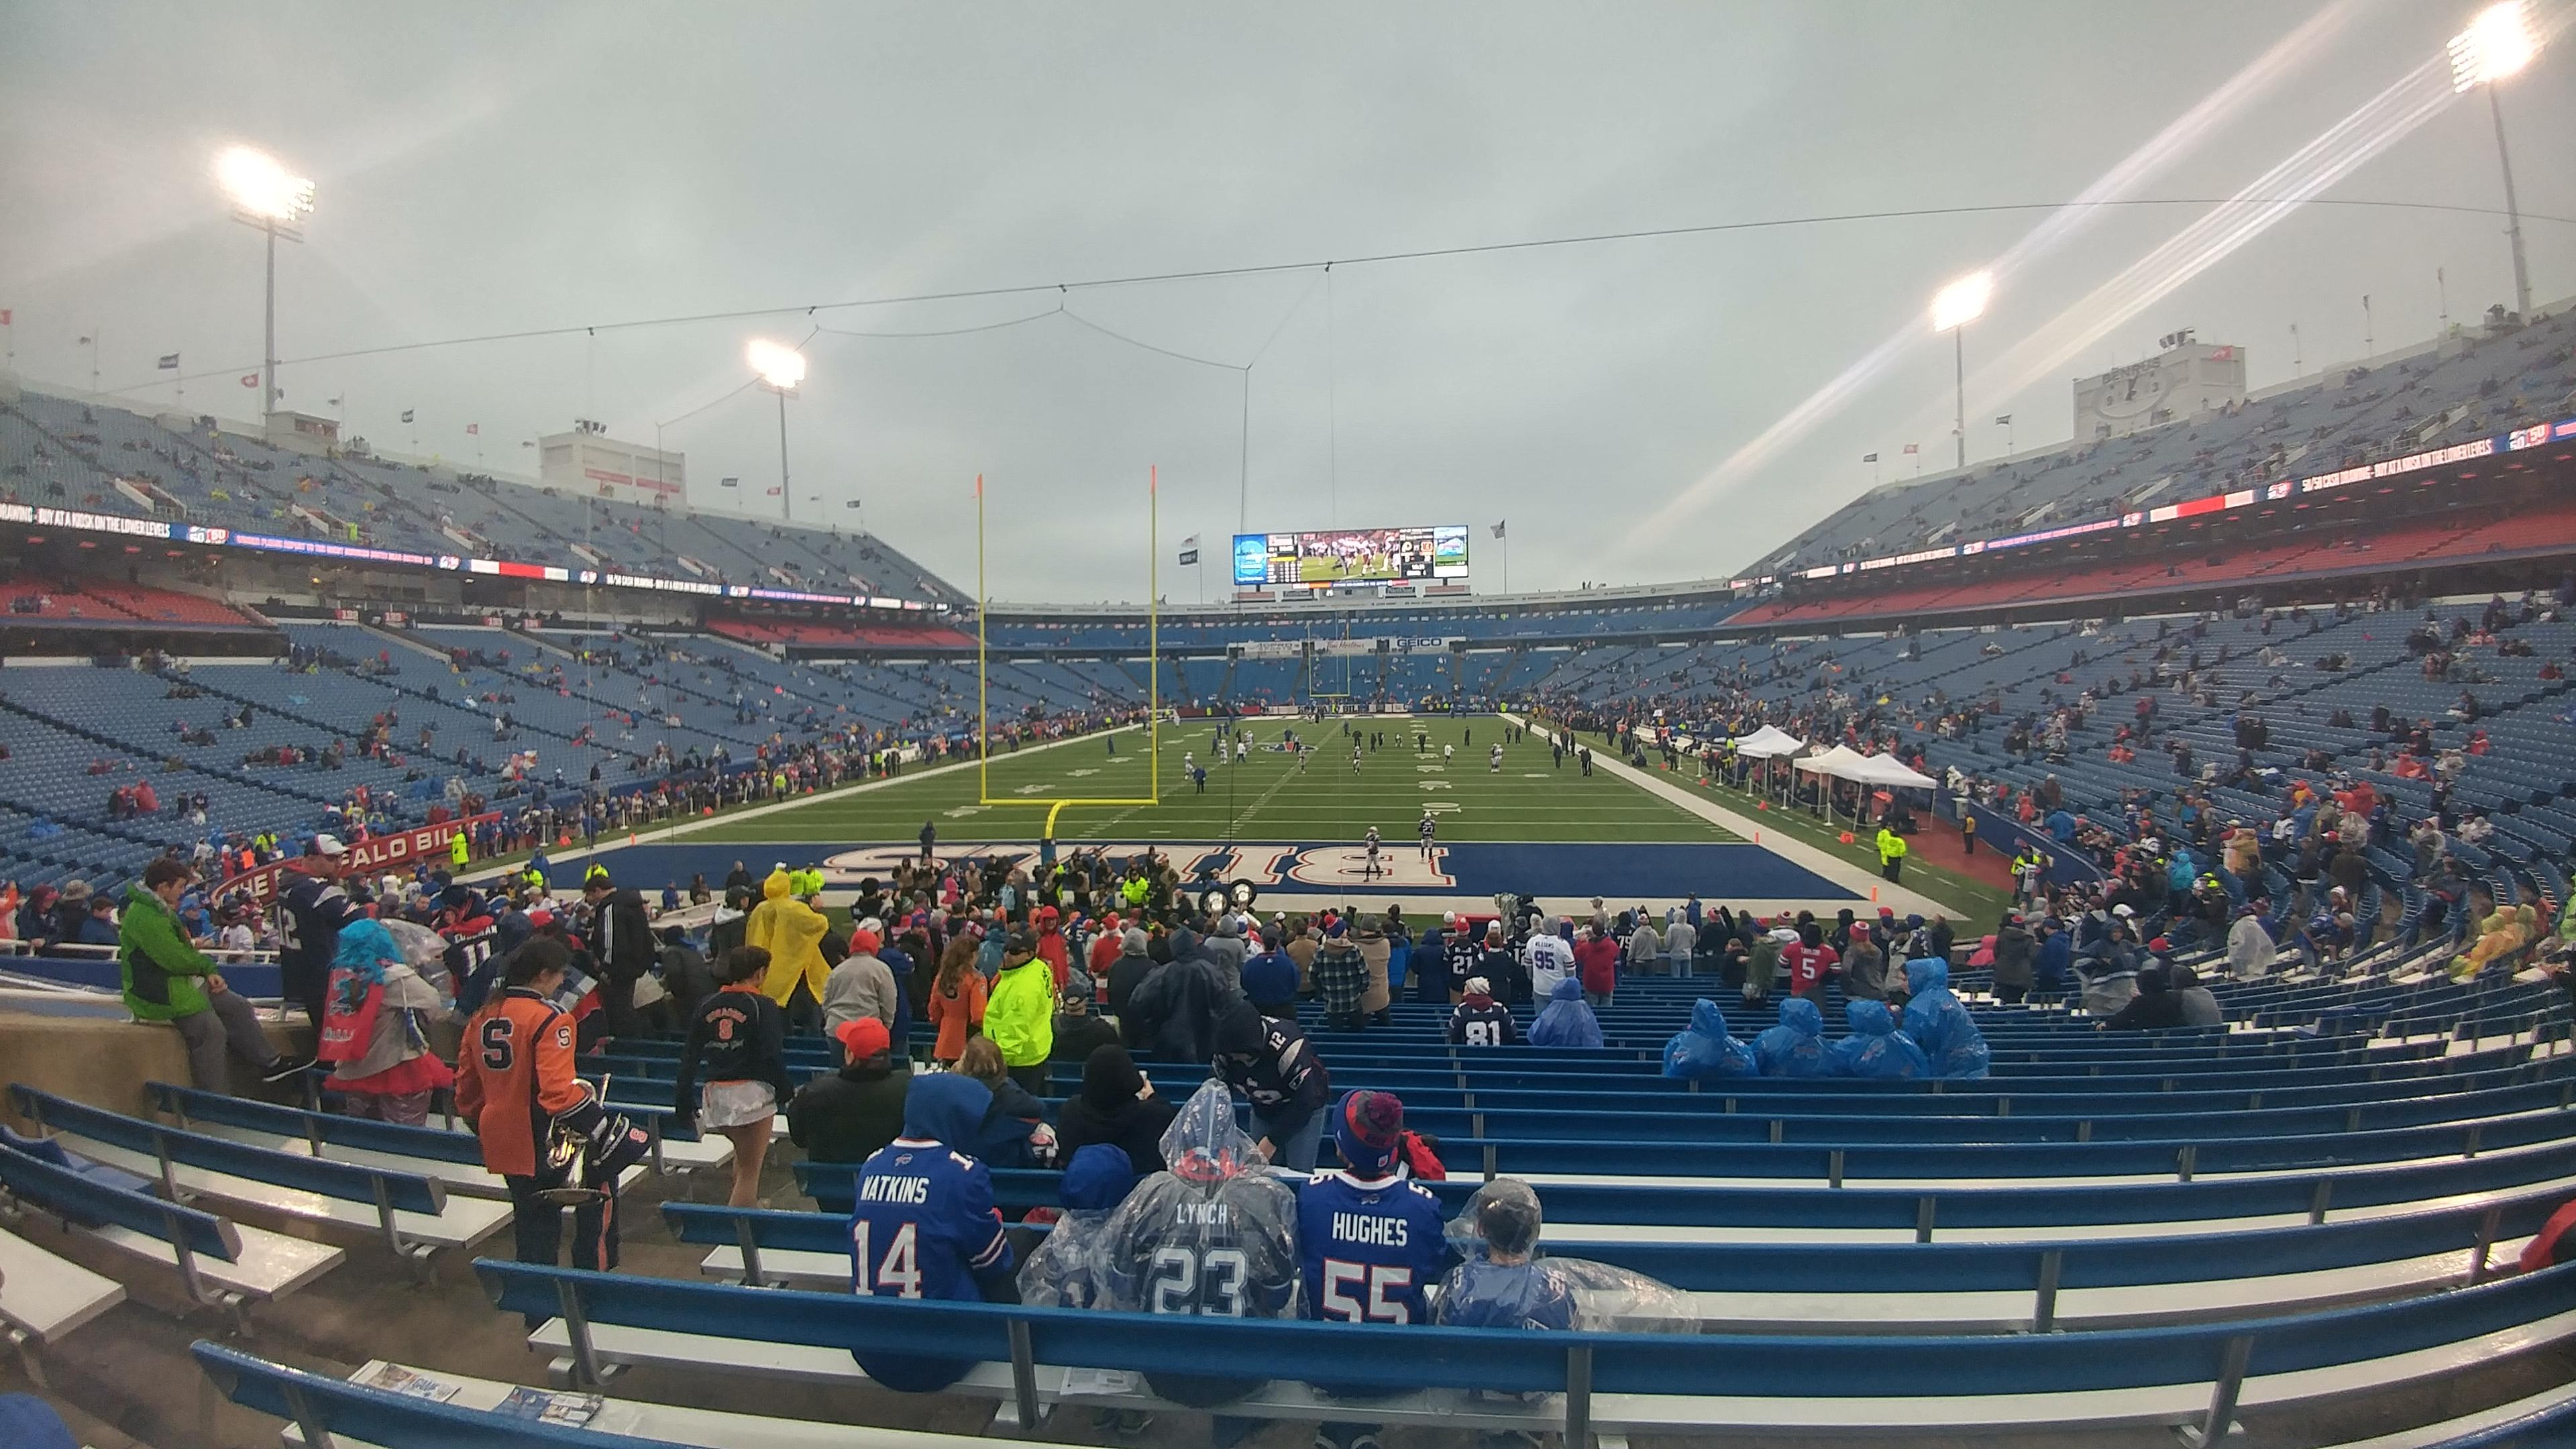 New Era Field Section 121 Row 26 Seat 20, 21